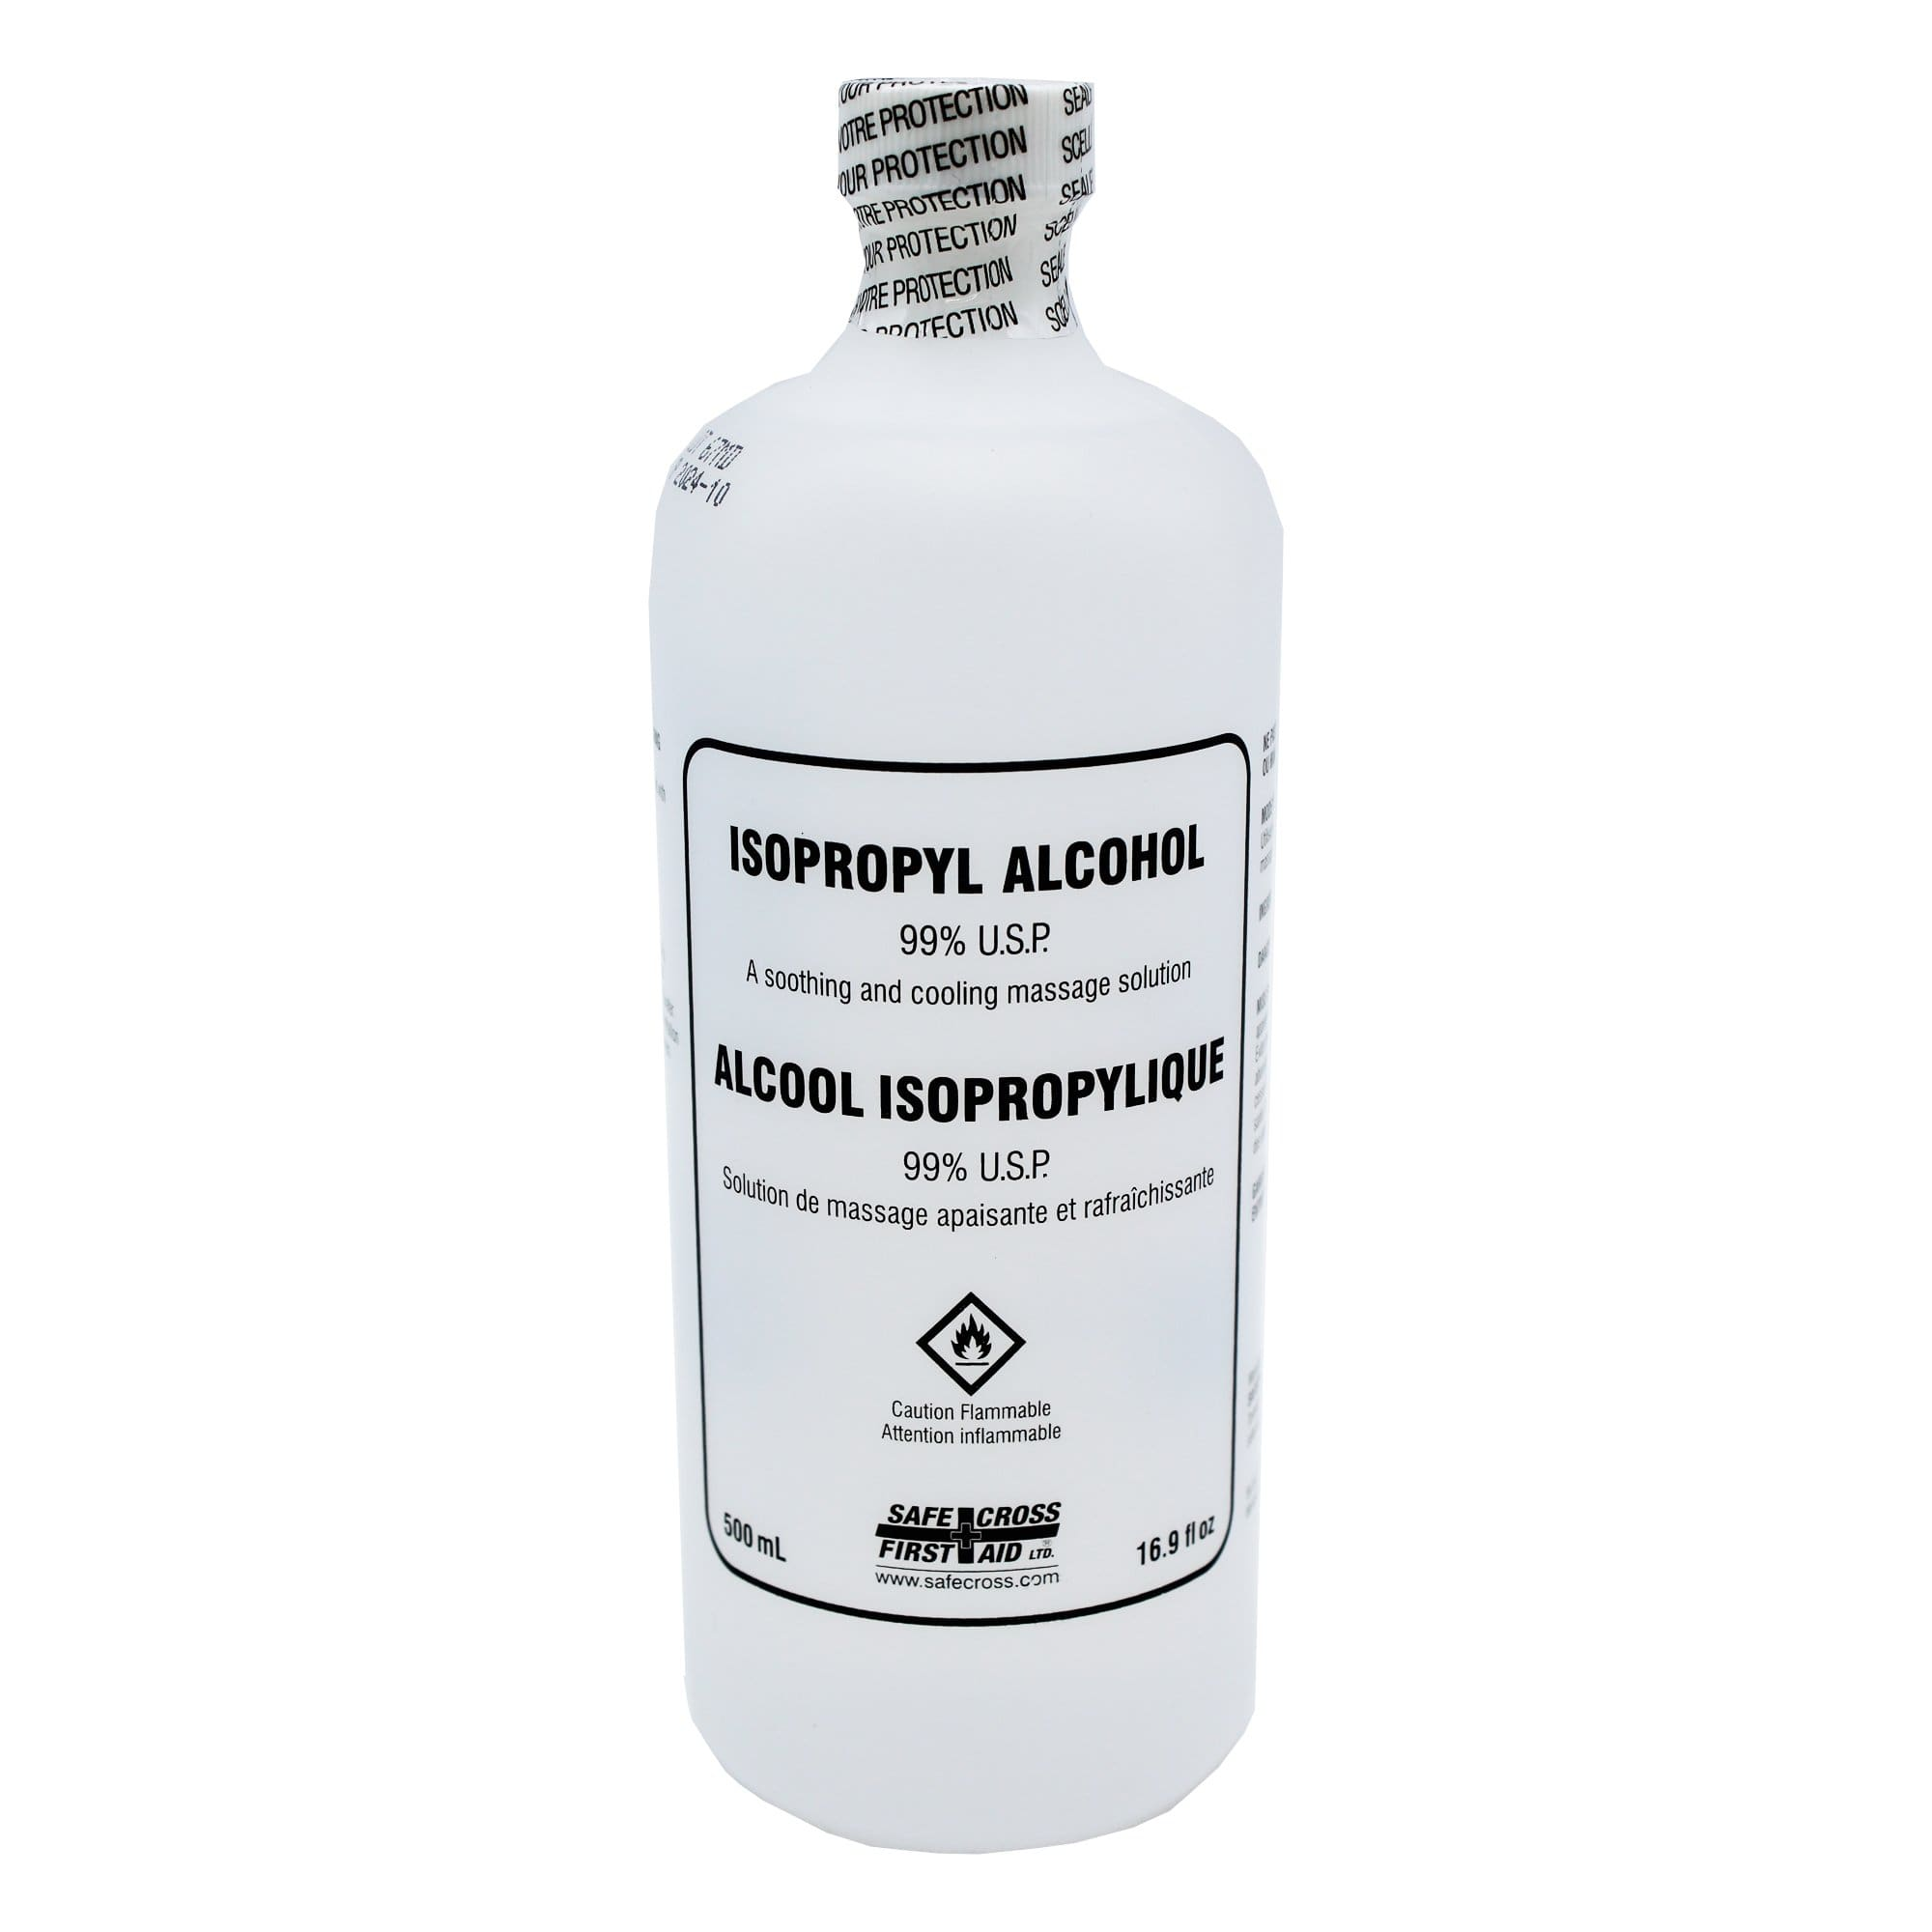 Isopropyl Alcohol 99% - 500 ml